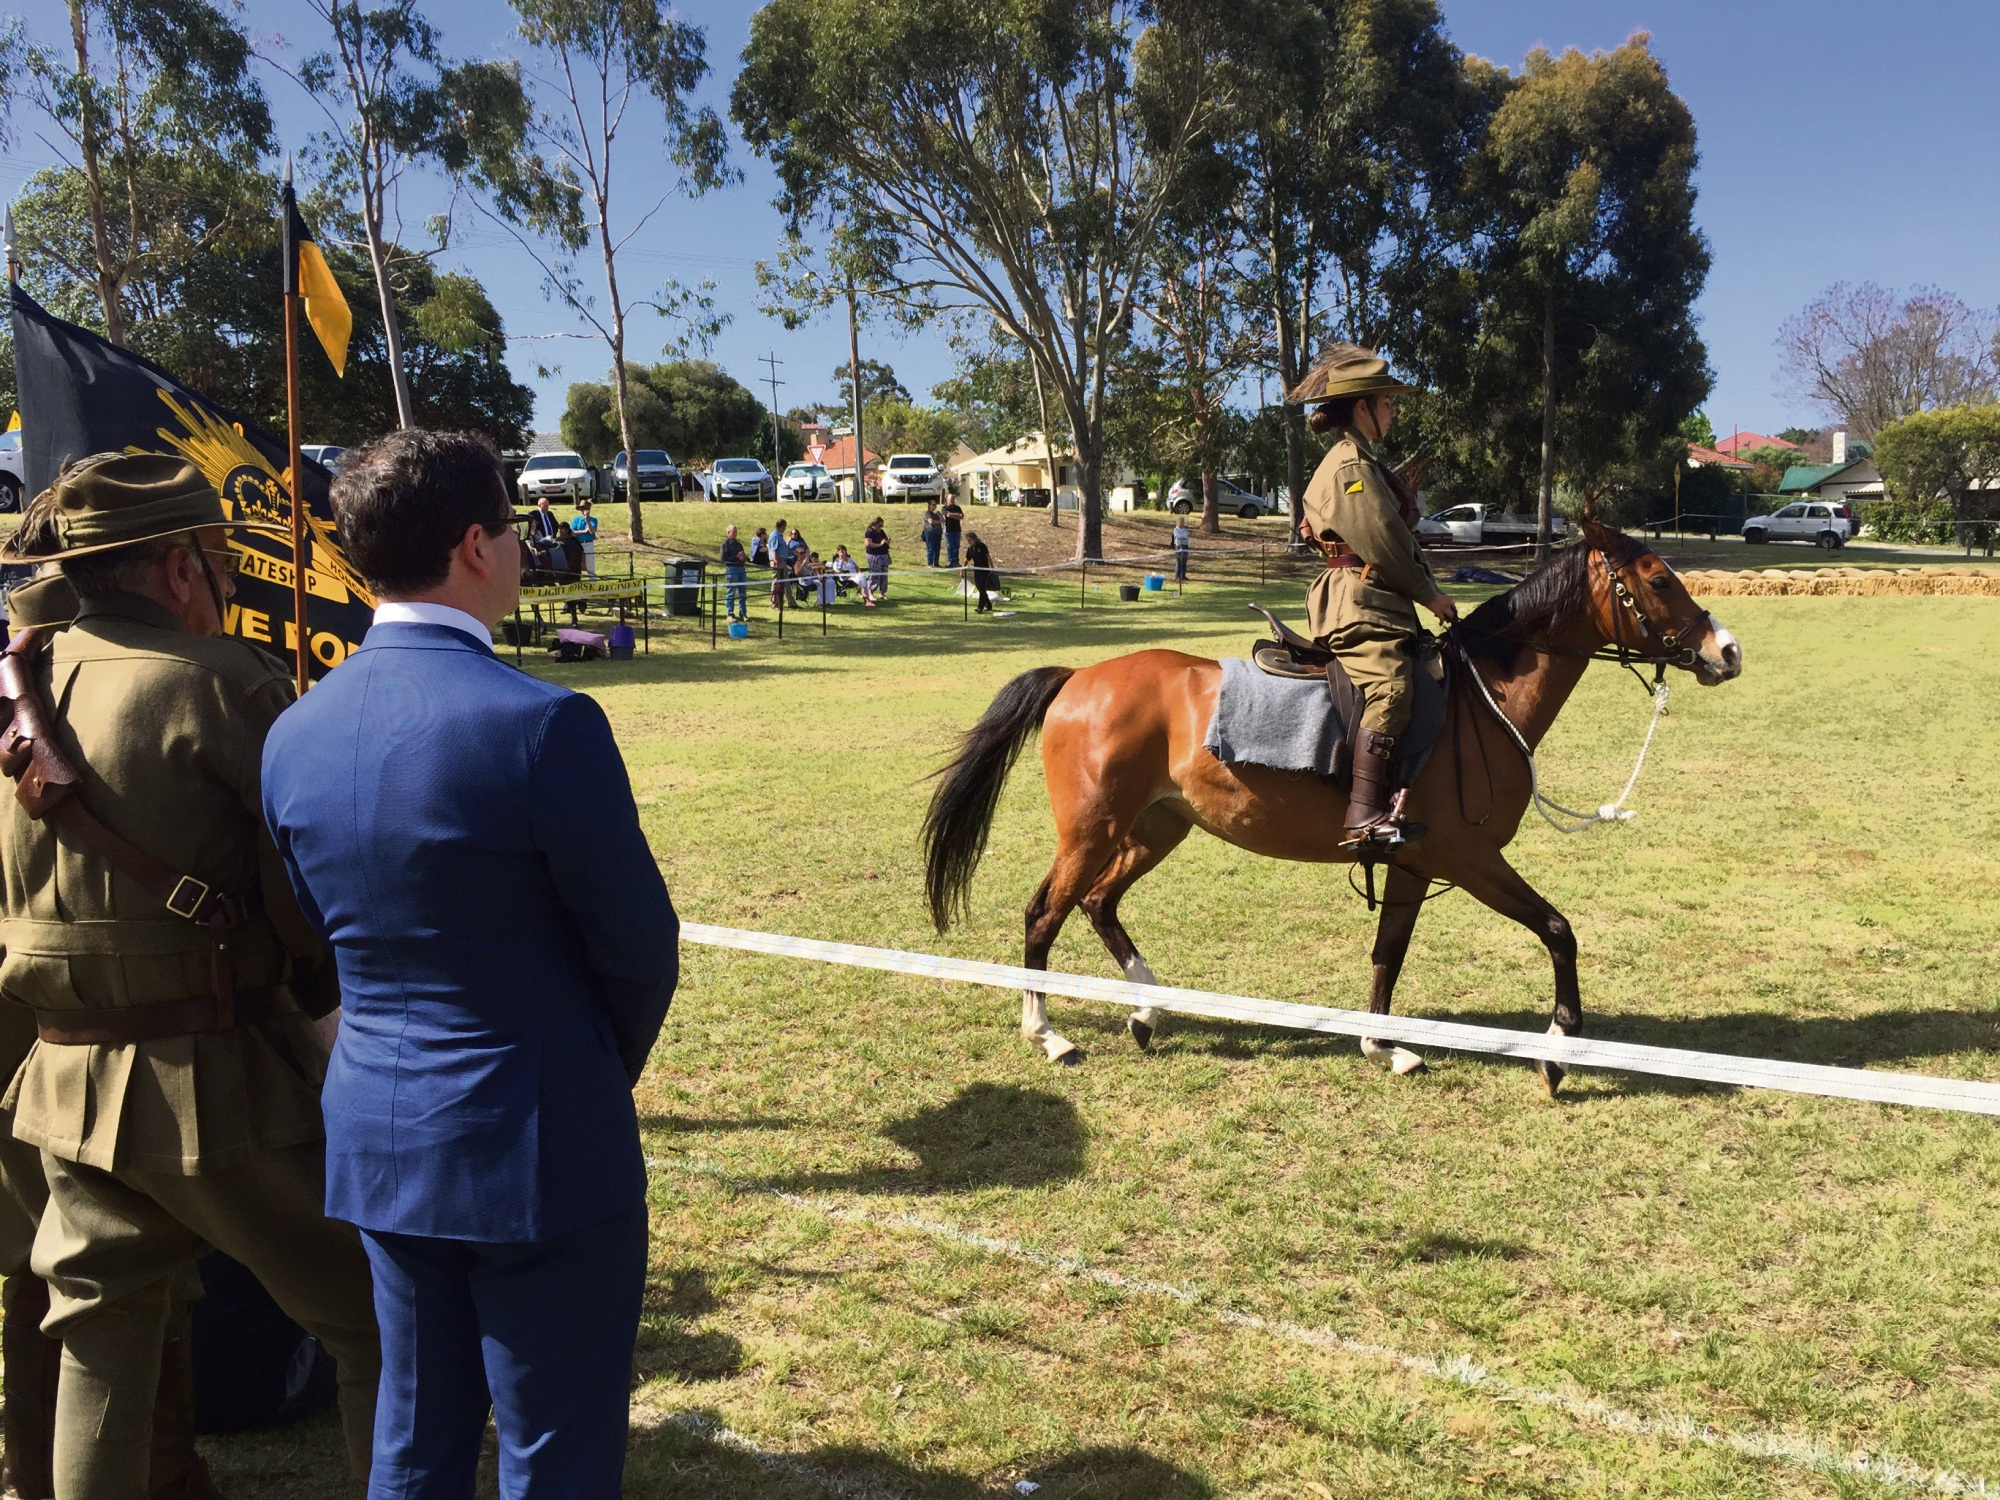 The Kelmscott-Pinjarra 10th Light Horse were part of a Battle of Beersheba memorial and re-enactment event on the weekend.